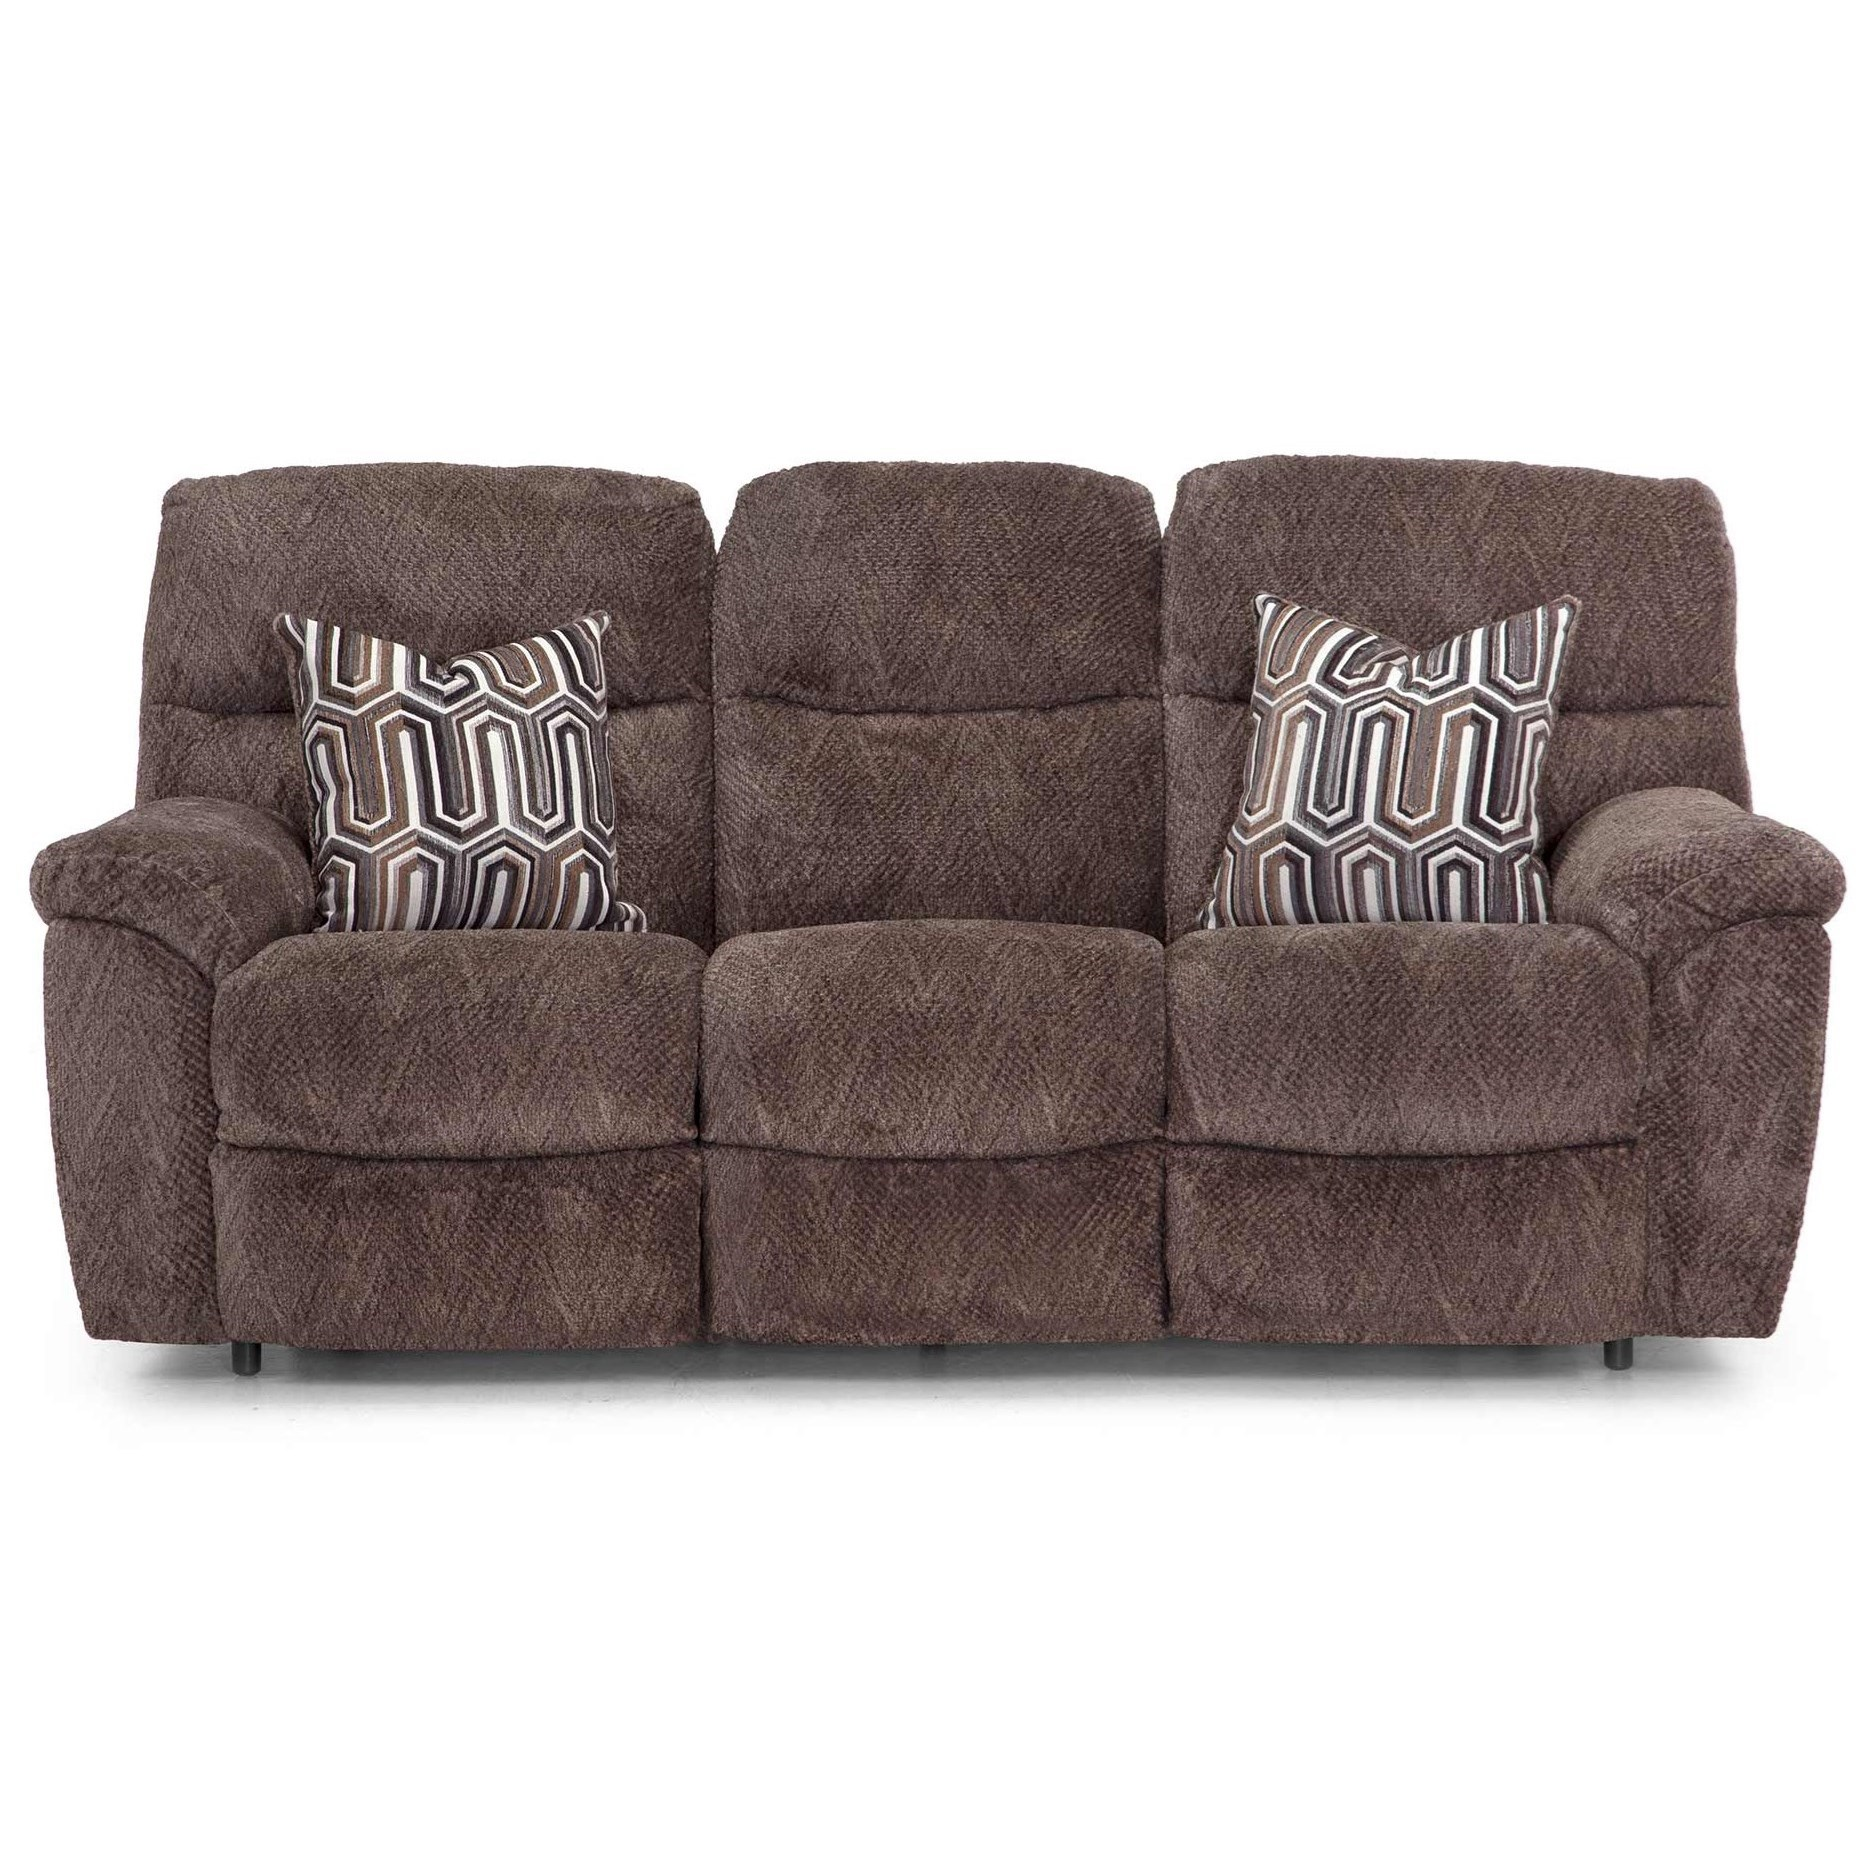 710 Power Reclining Sofa by Franklin at Lagniappe Home Store